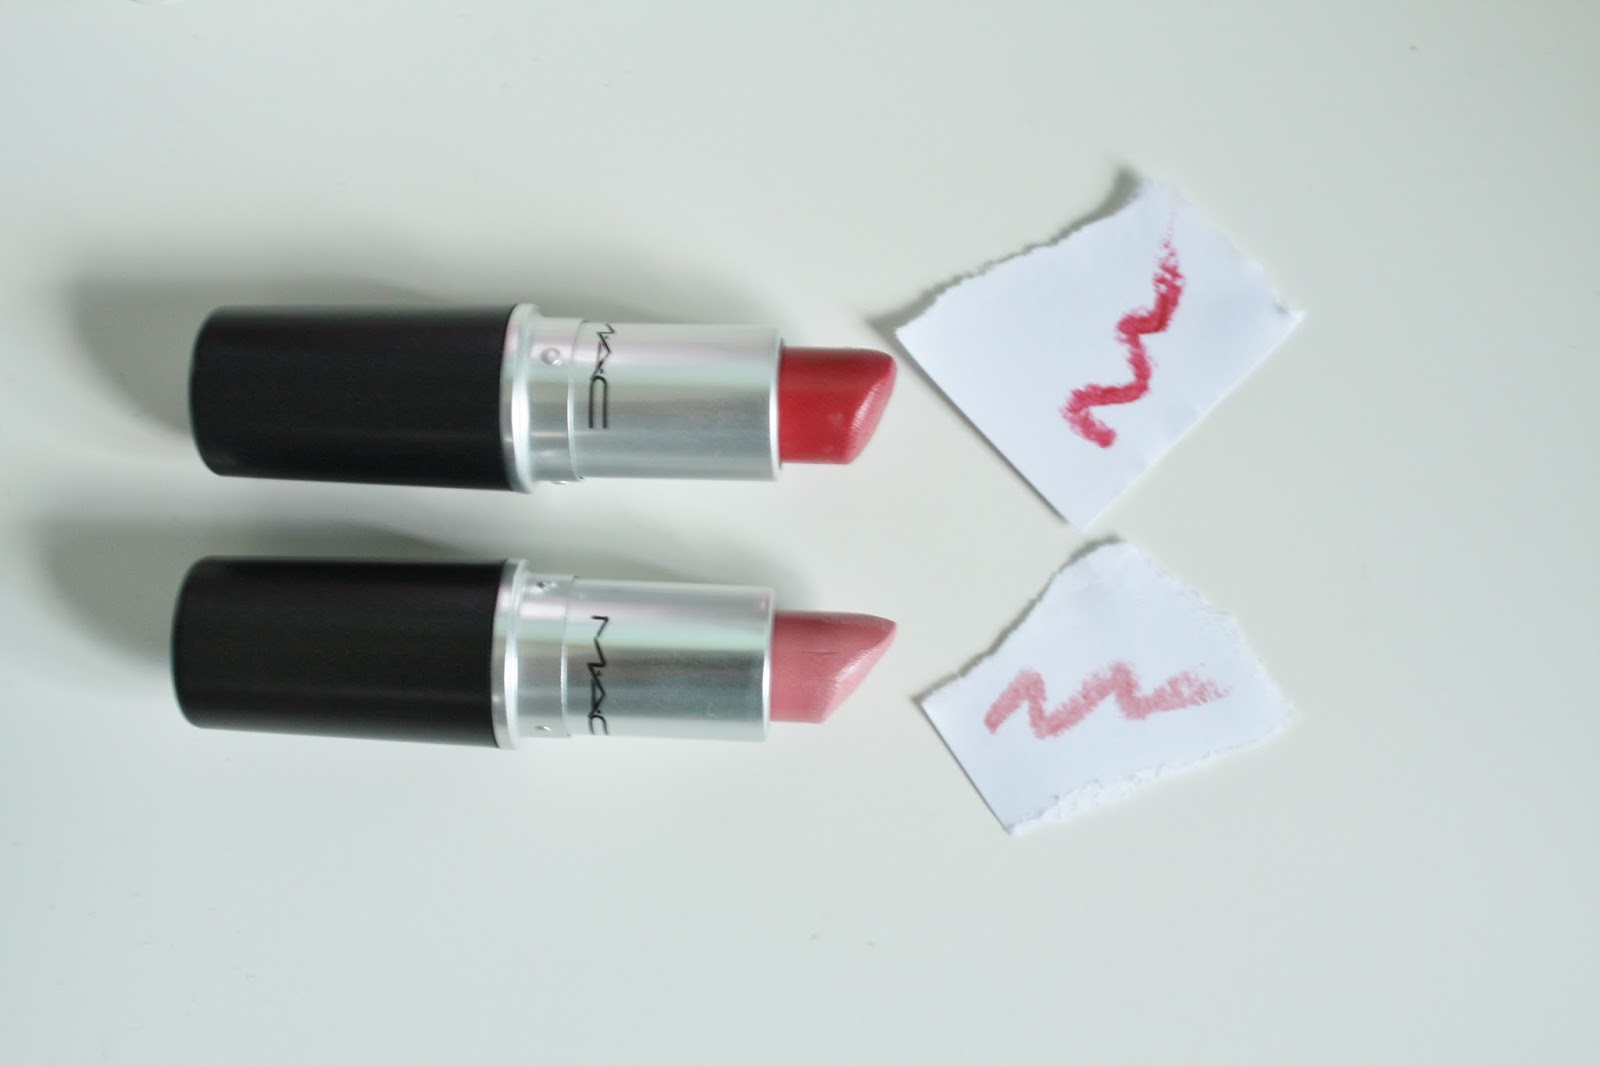 MAC Lipsticks - One Hold and Angel